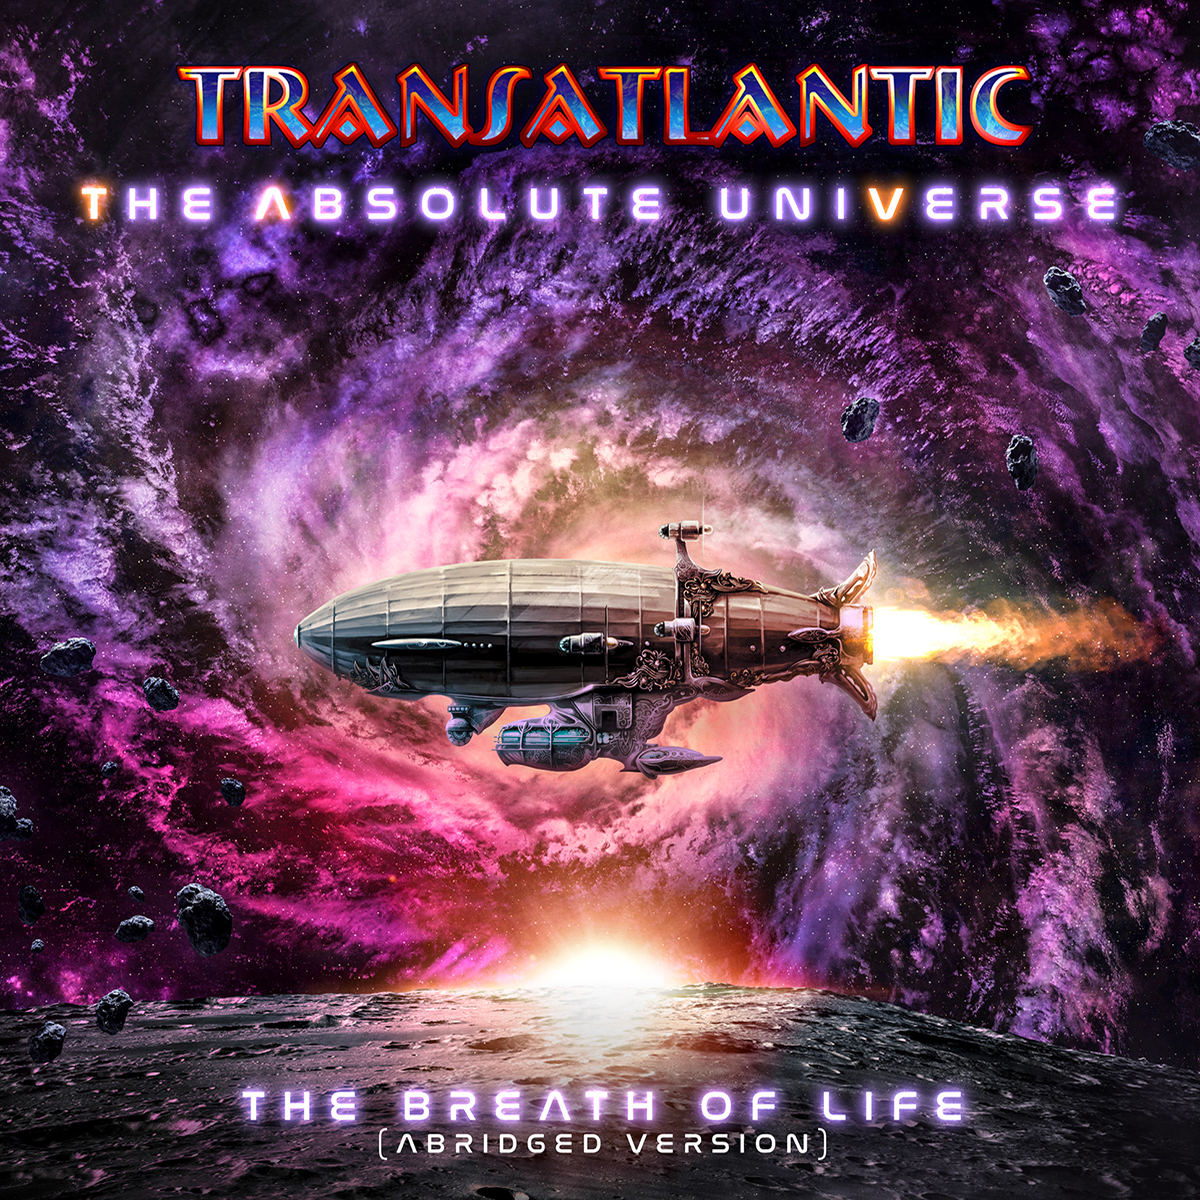 Transatlantic - The Absolute Universe The Breath Of Life (Abridged Version) - Vinyl